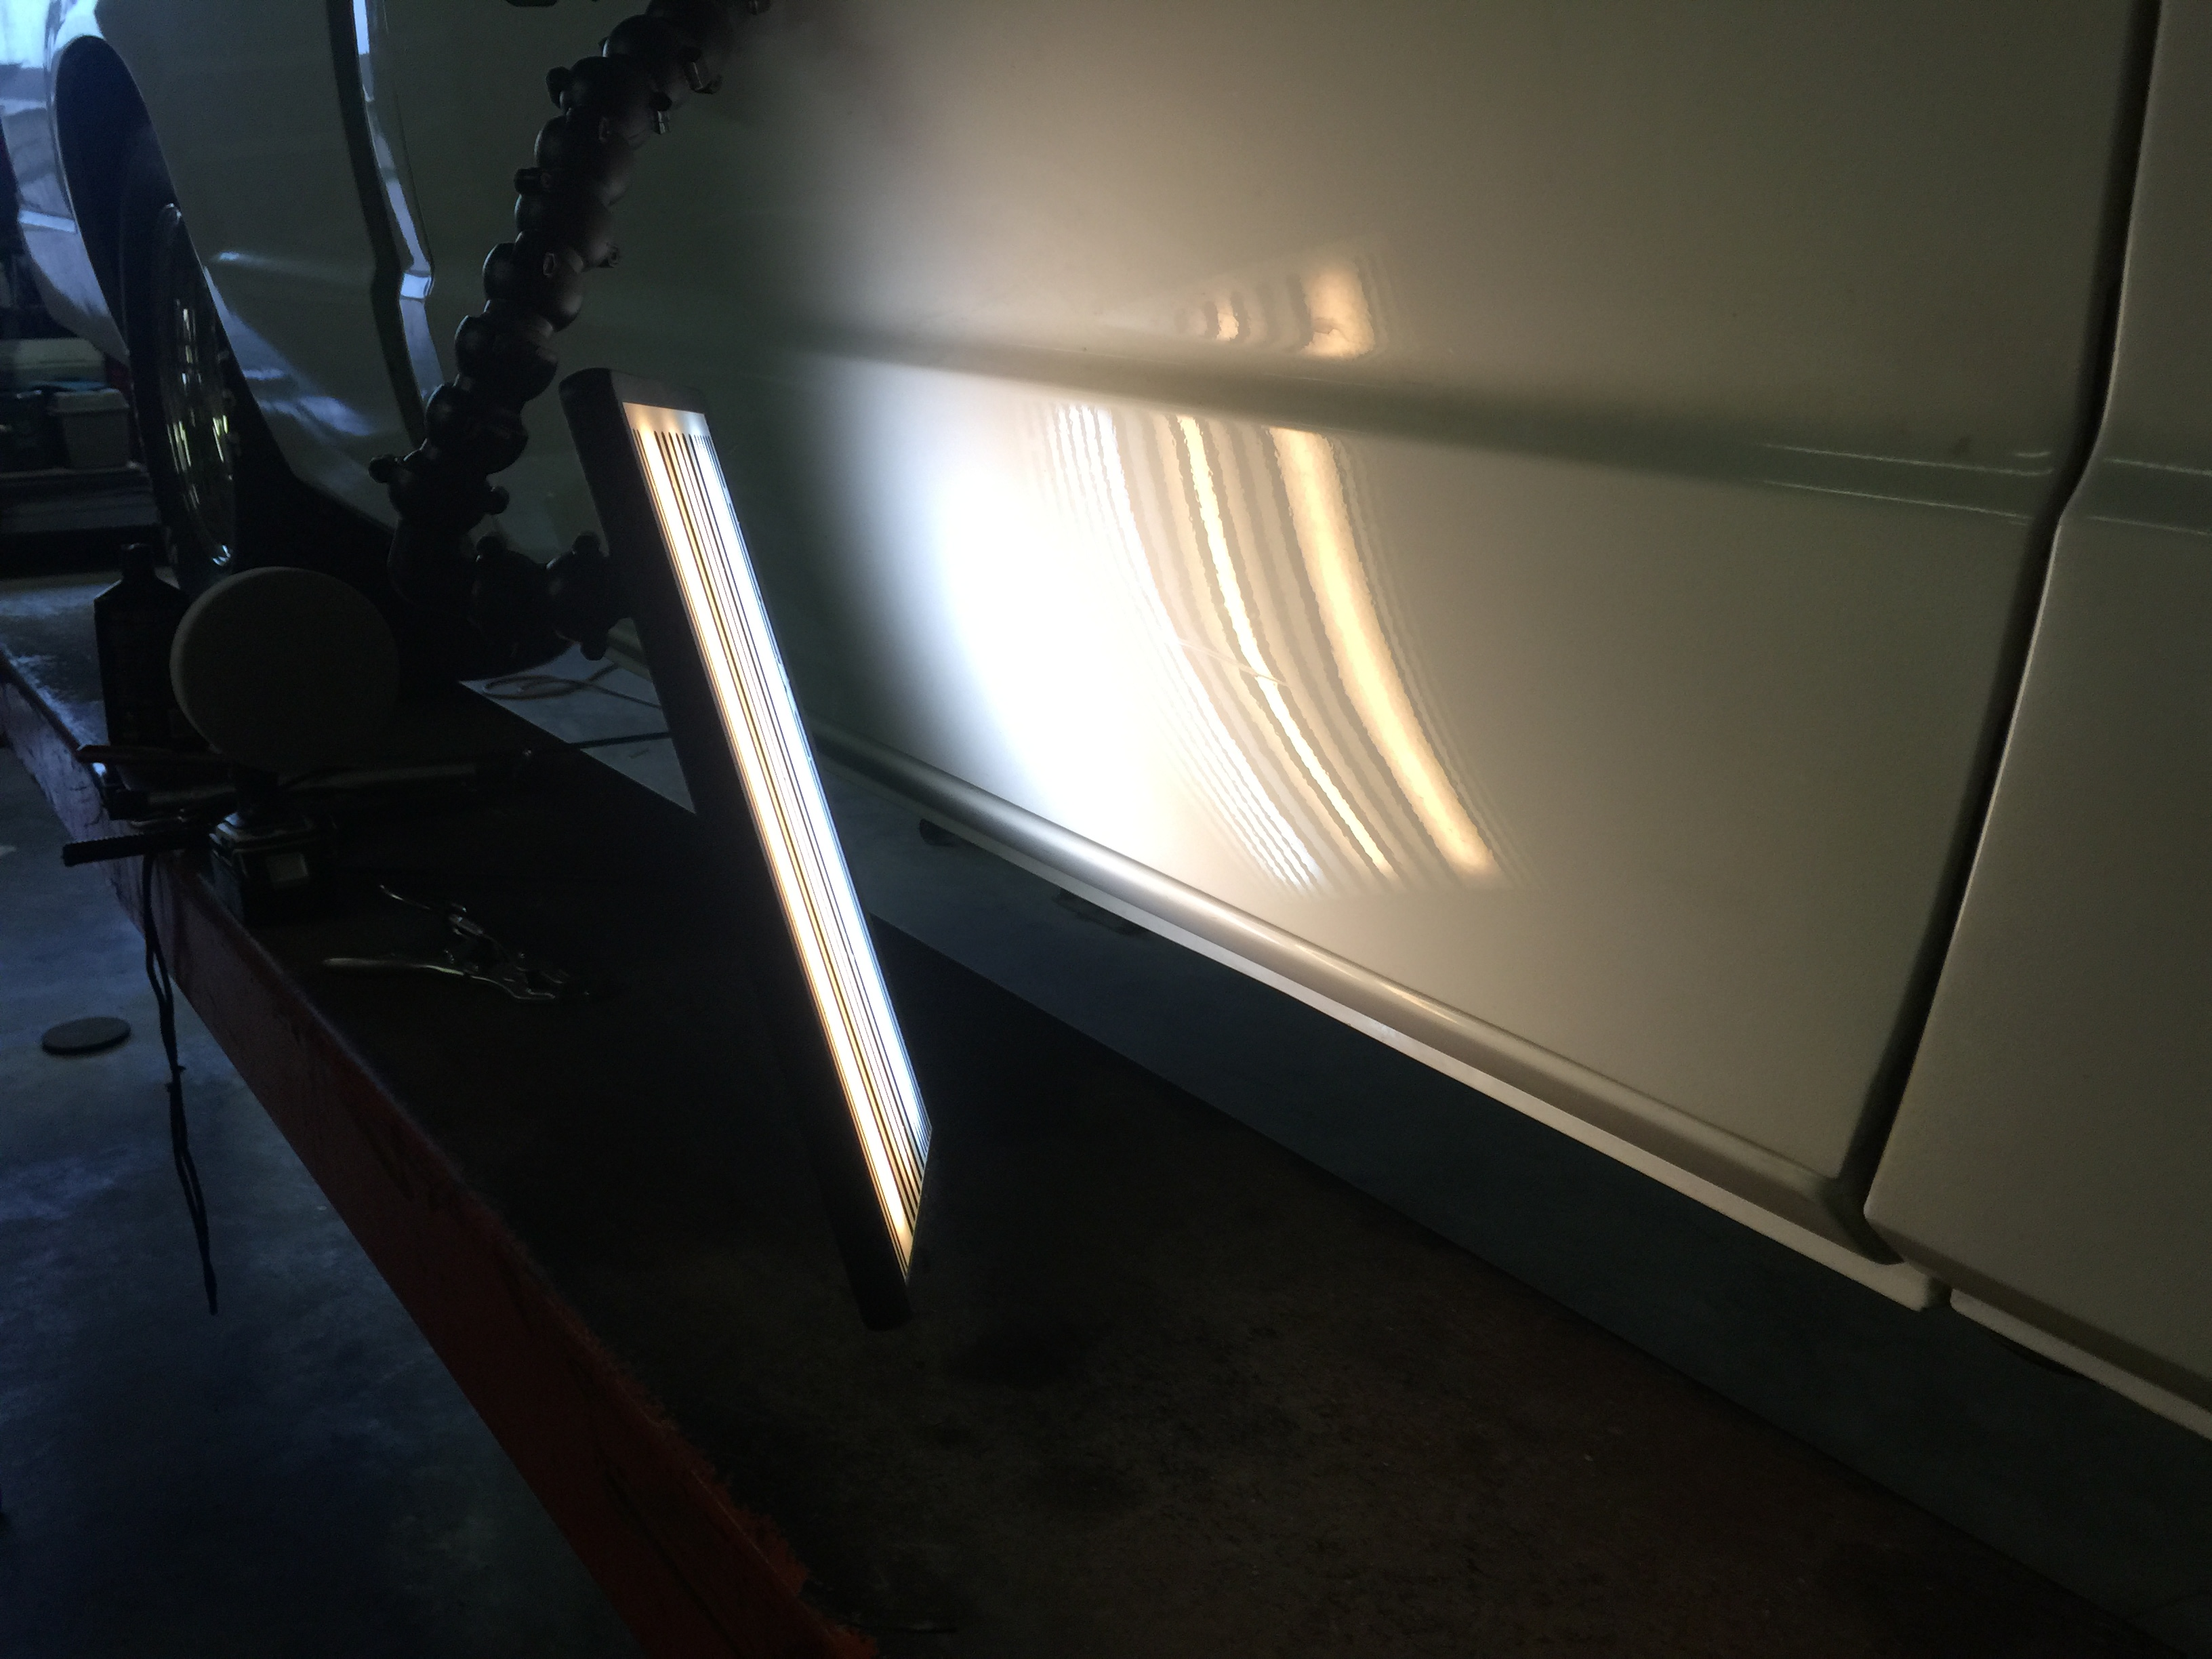 1998 Chevy S-10 Dent Repair, Springfield, IL. http://217dent.com